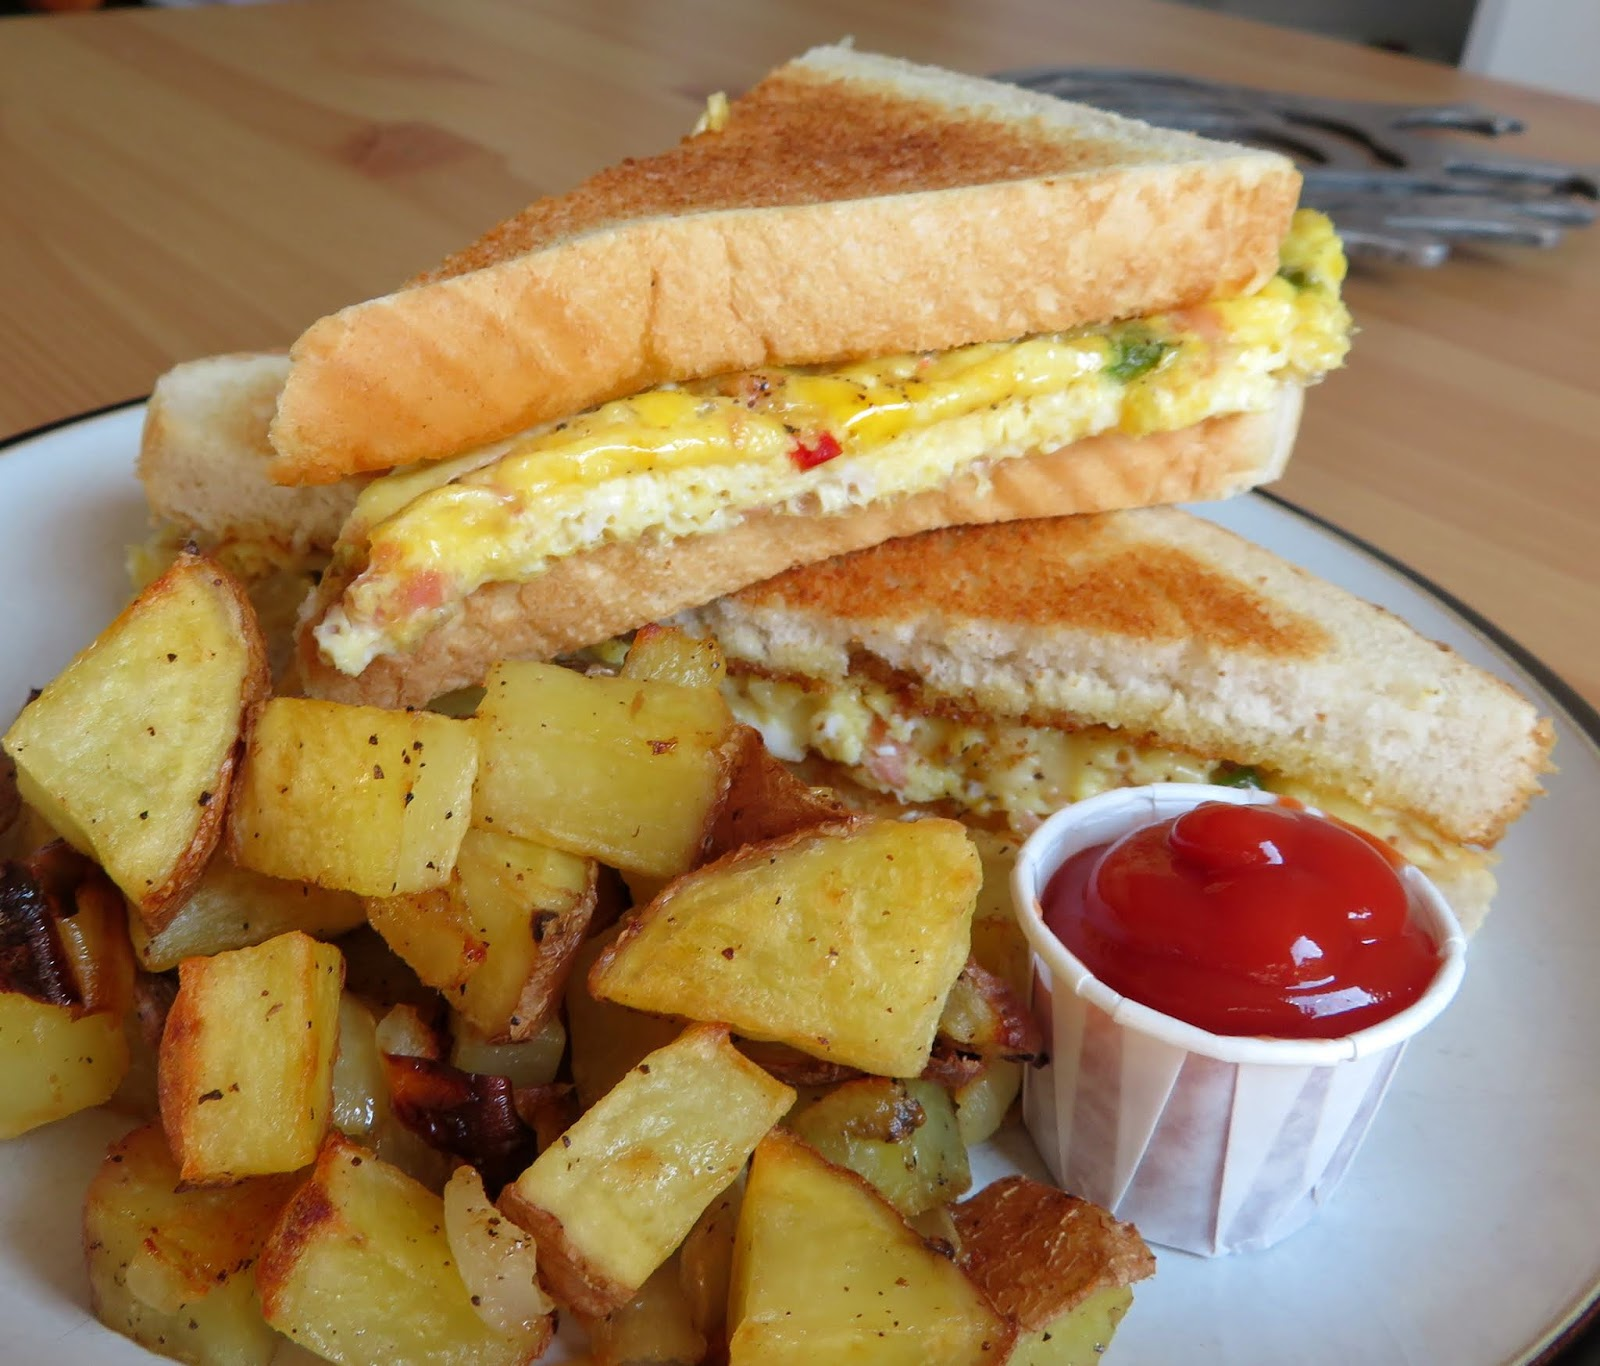 The English Kitchen Baked Western Sandwich With Oven Hash Browns